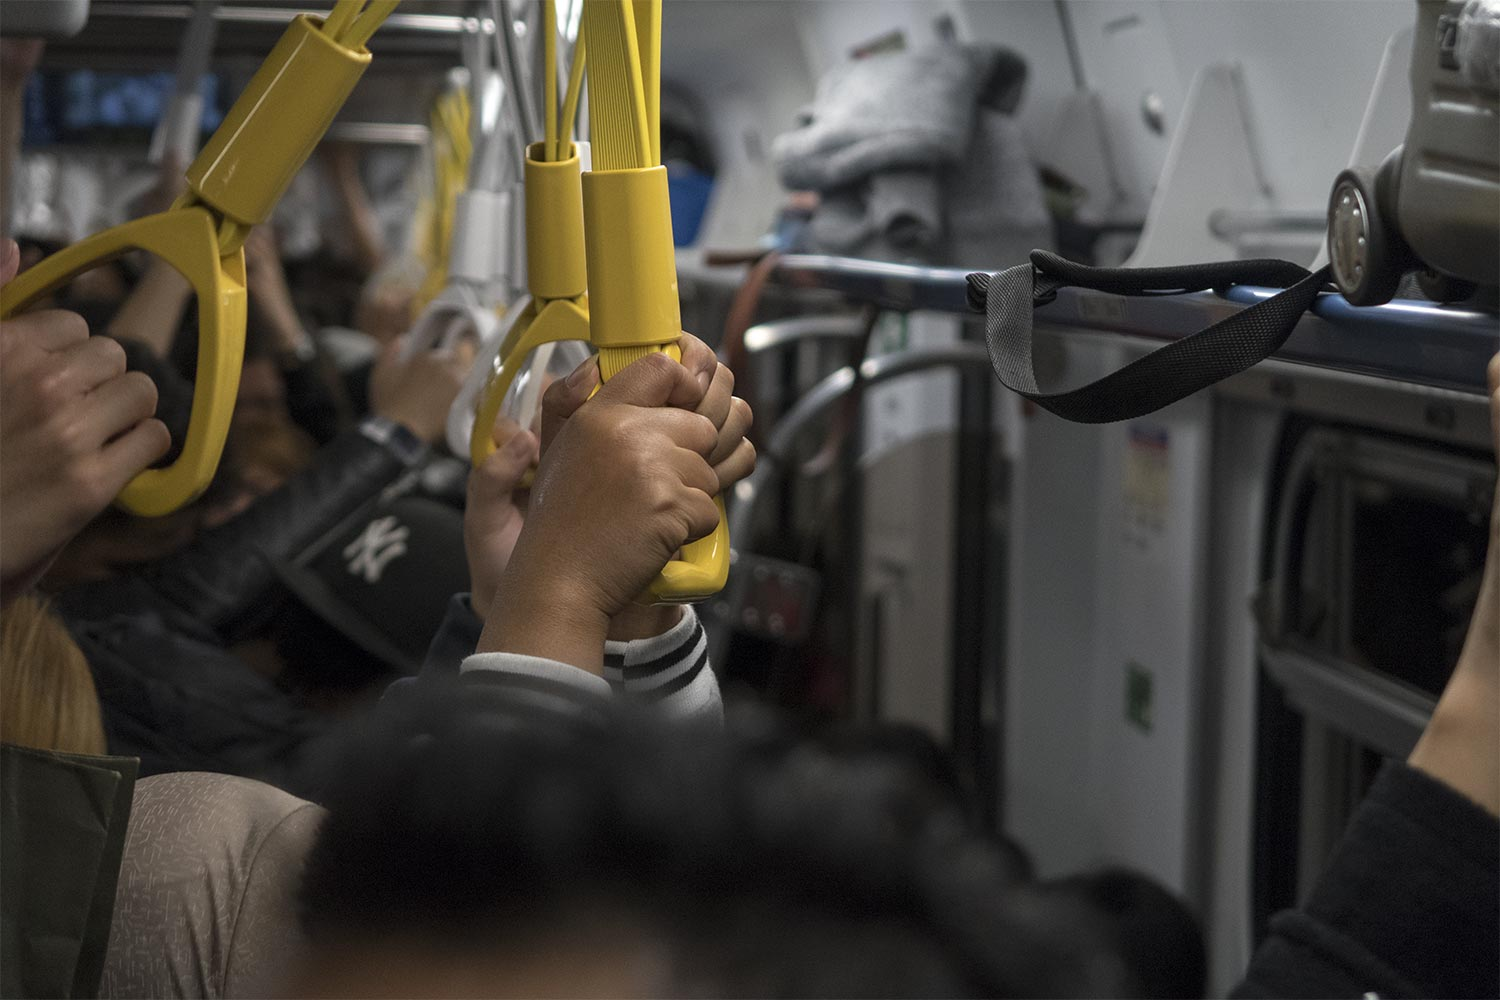 Taiwanese Trains in New Years Eve - Happymind